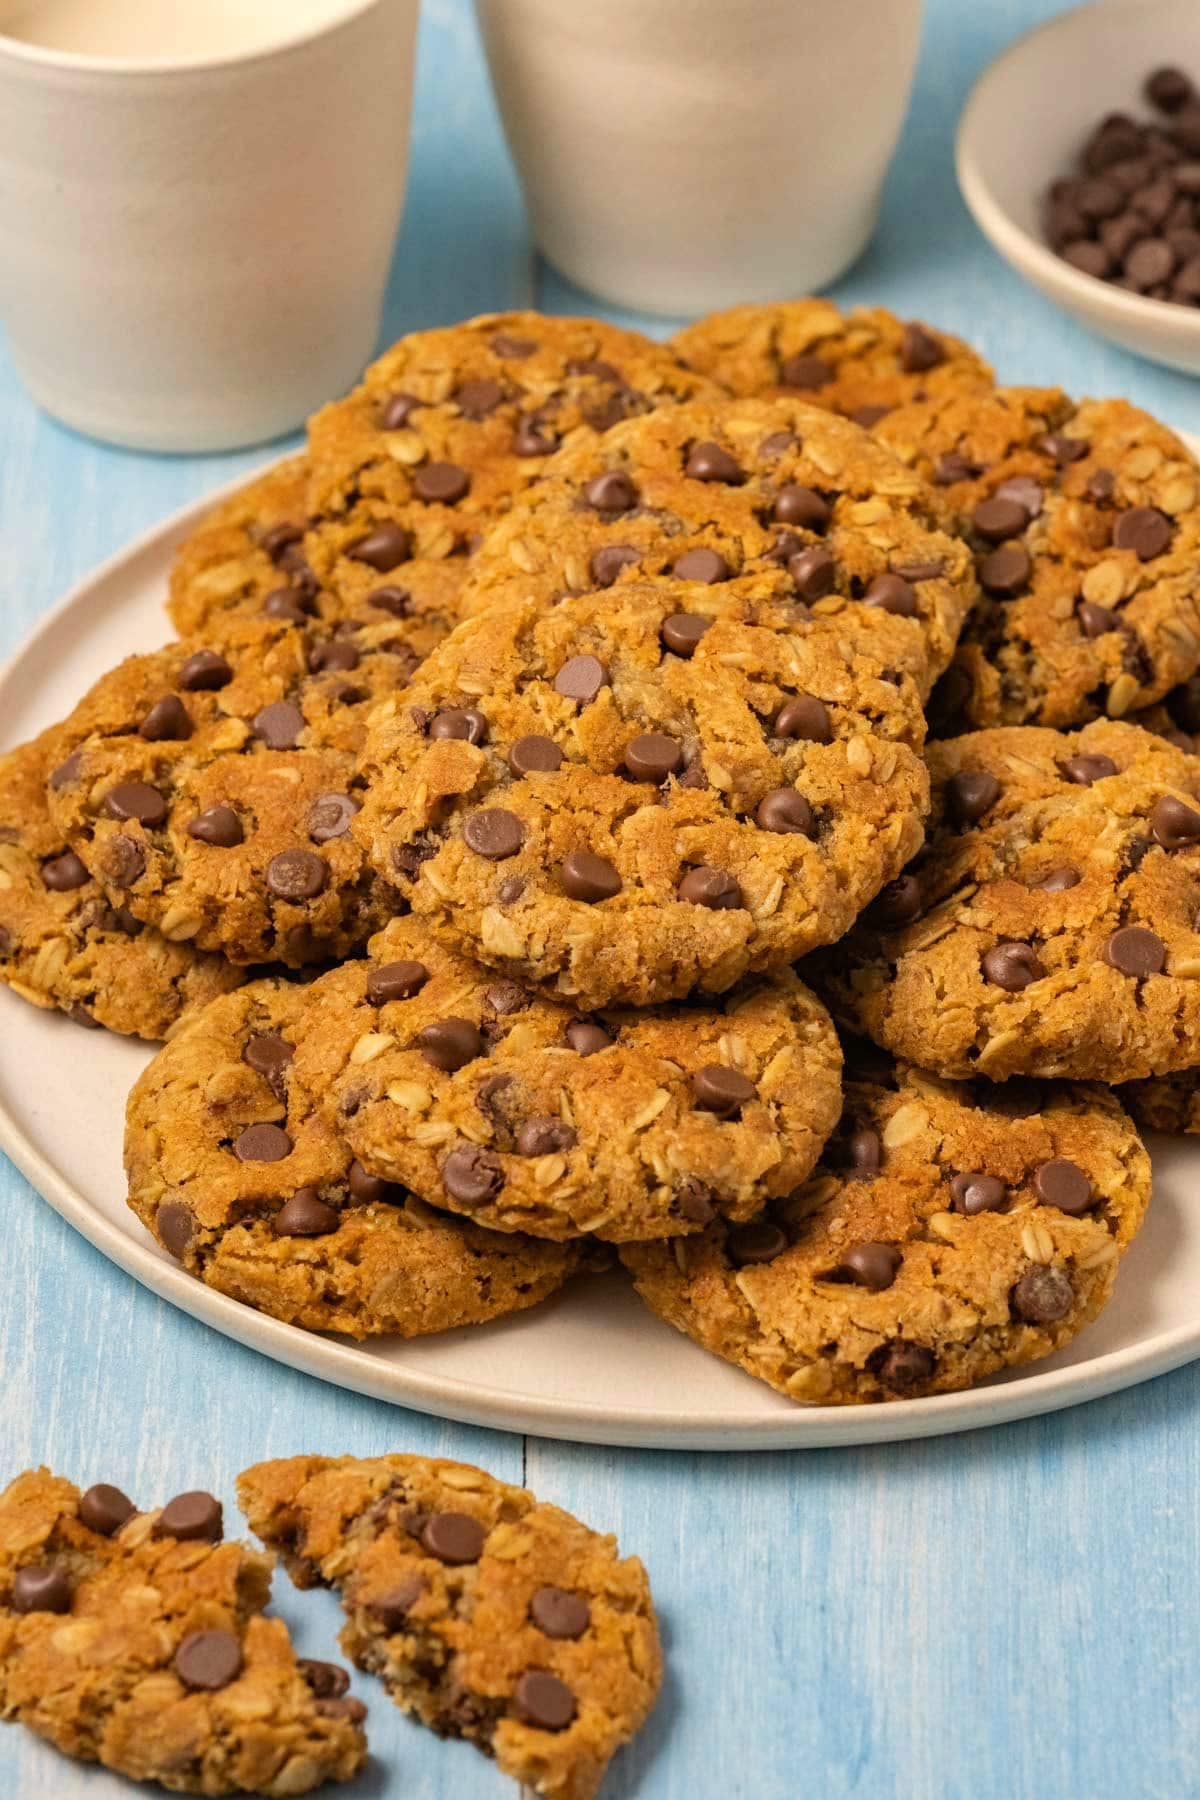 Oatmeal chocolate chip cookies stacked up on a plate.